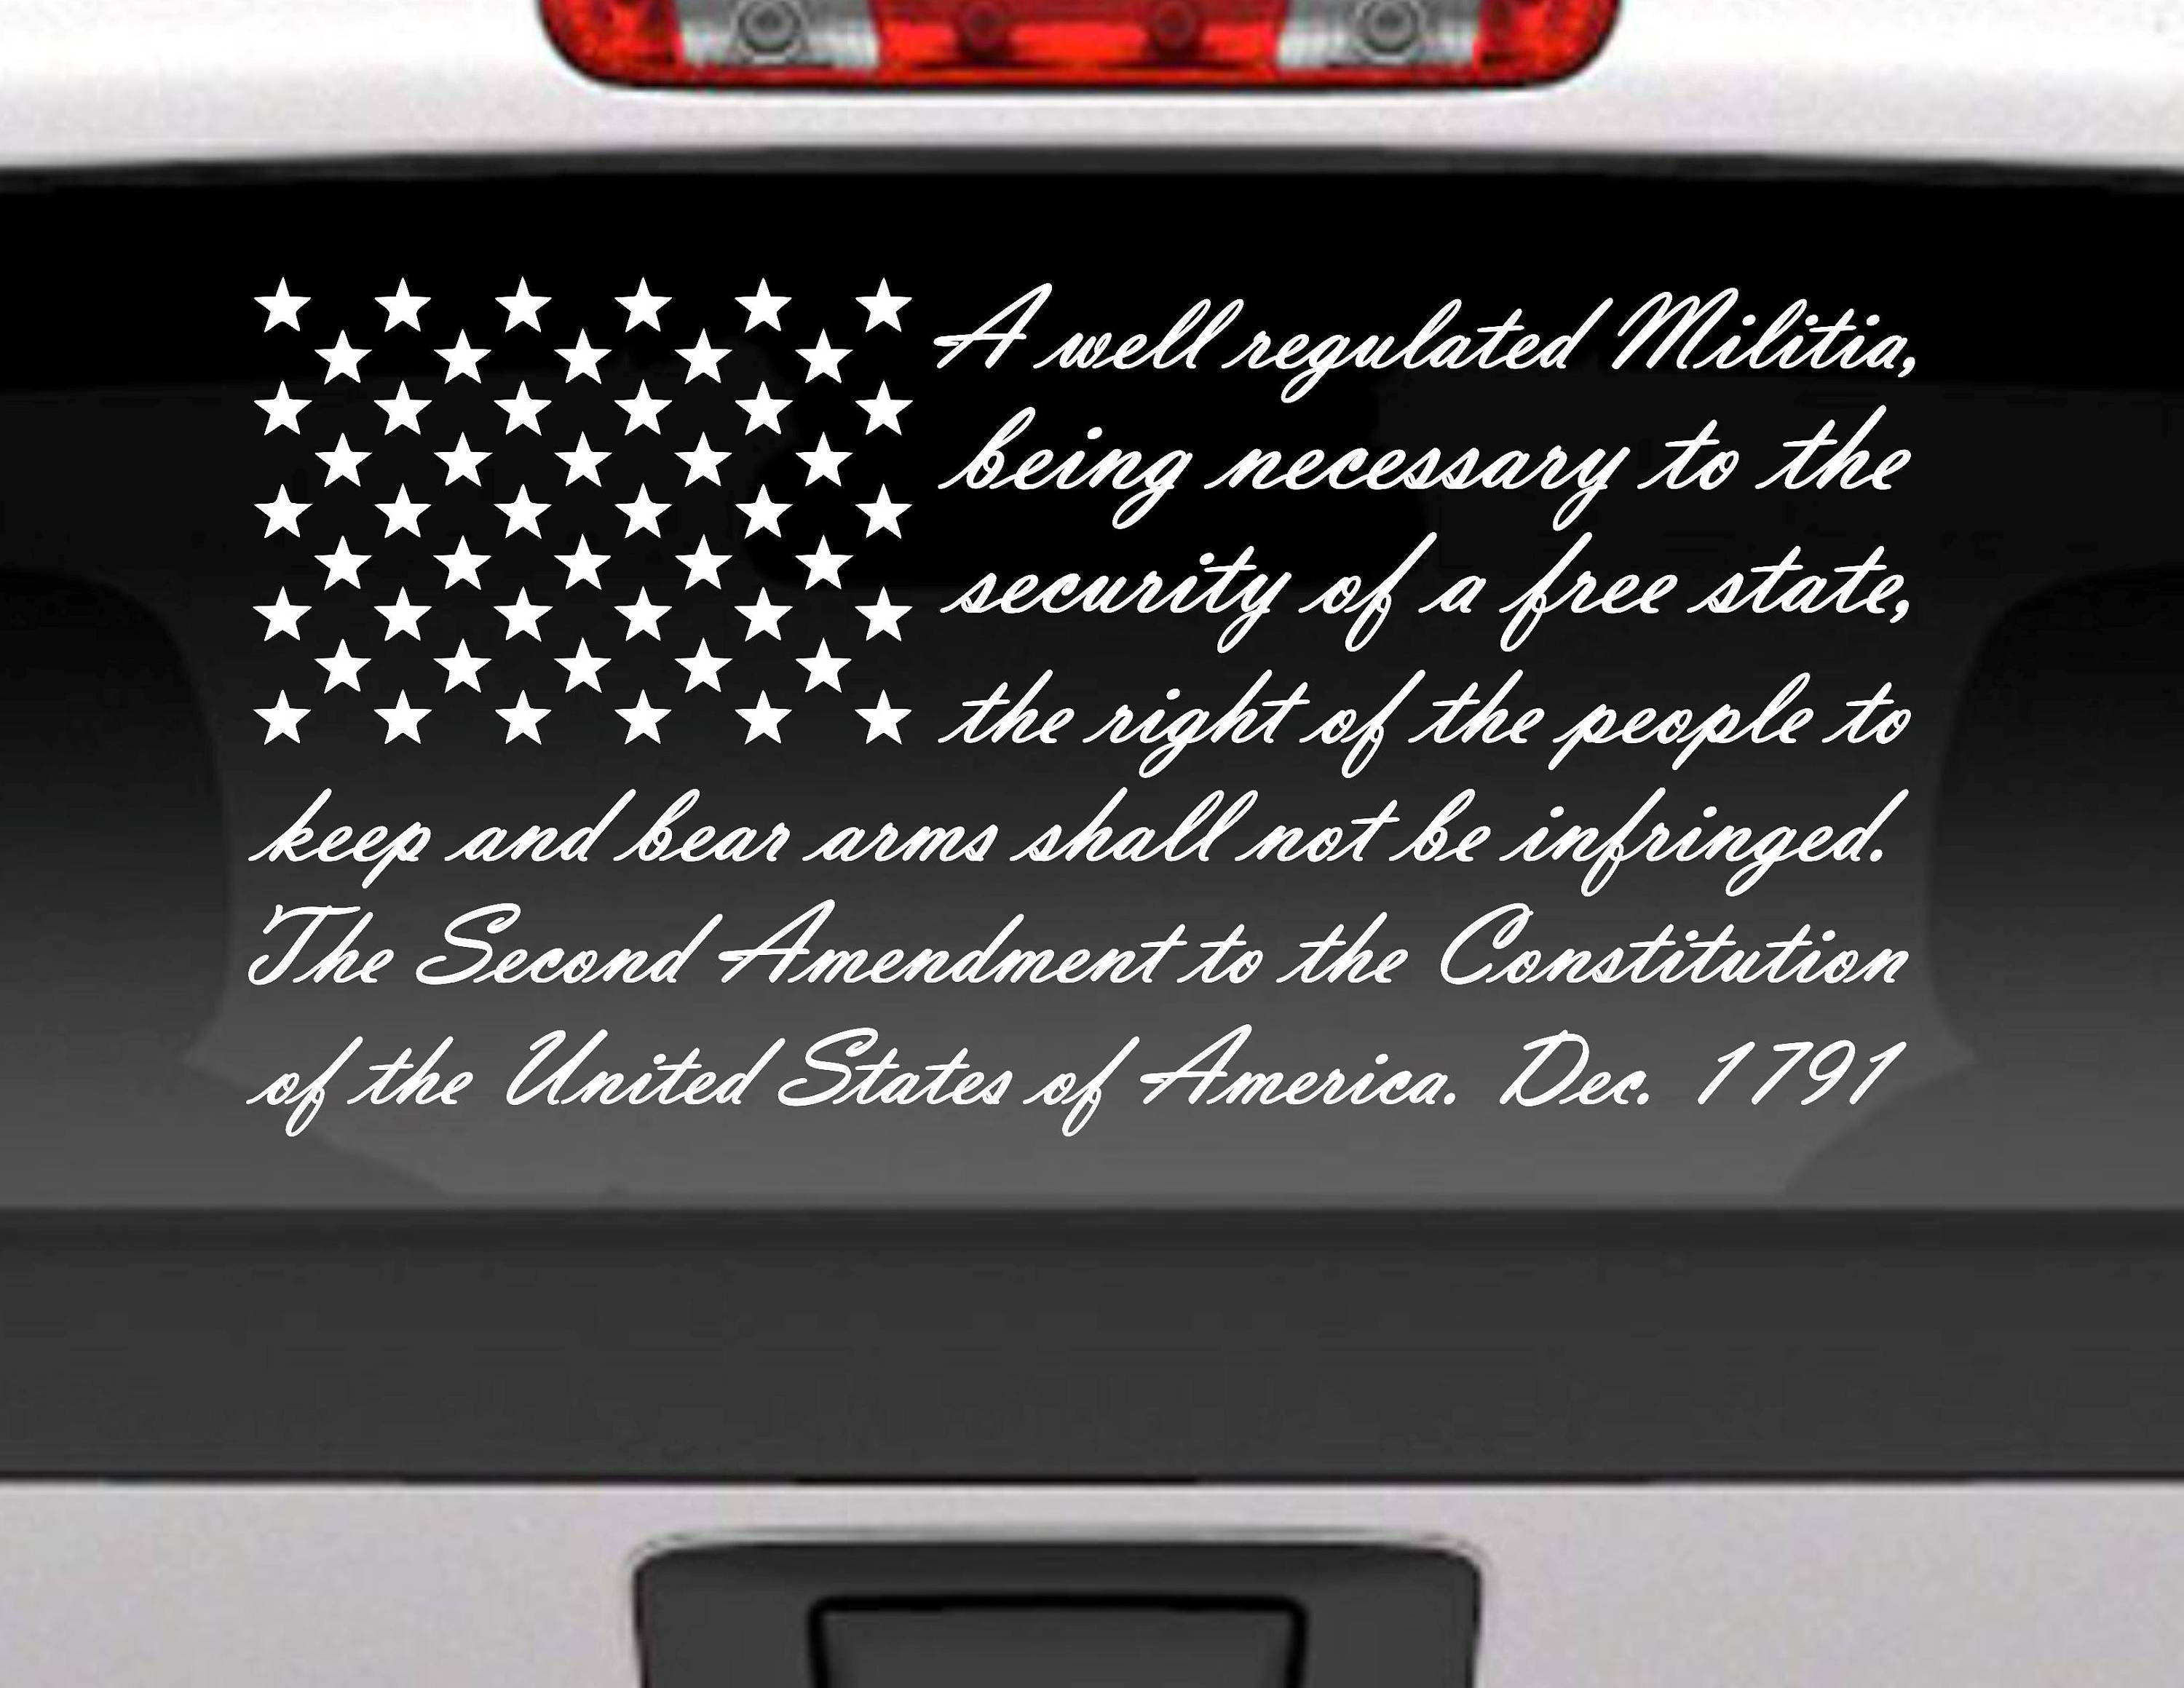 Second Amendment American Flag Vinyl Decal Sticker For Cars Trucks And More Vinyl Window Decals Vinyl Decal Stickers Vinyl Decals